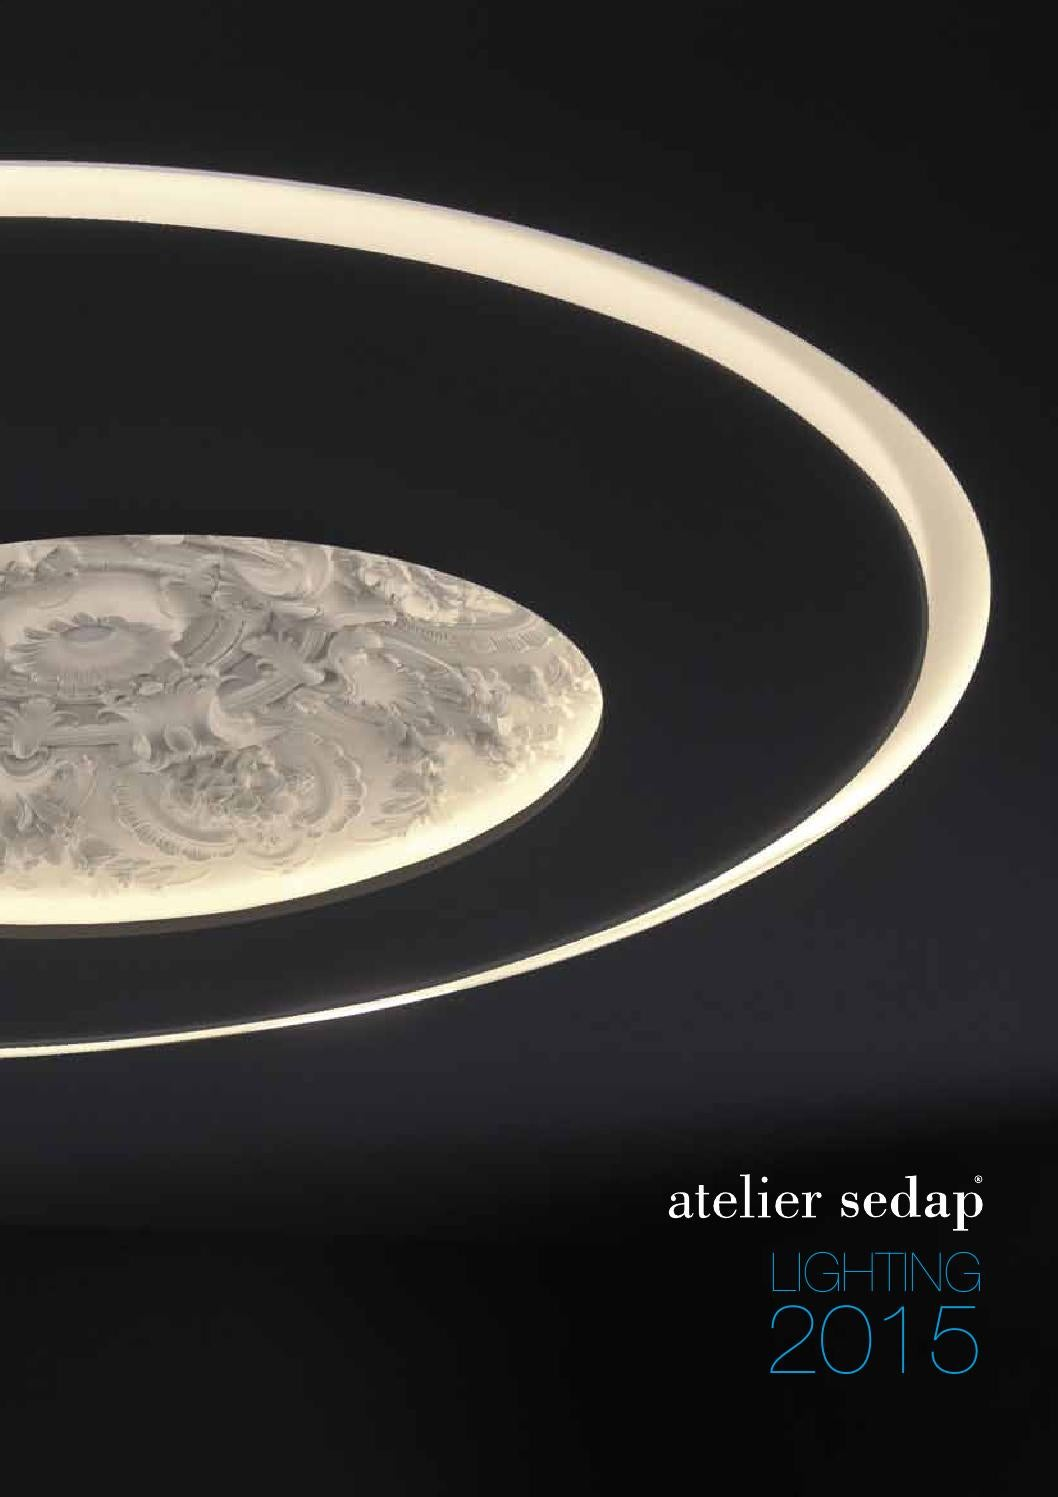 atelier sedap lighting 2015 catalogue by brink licht issuu